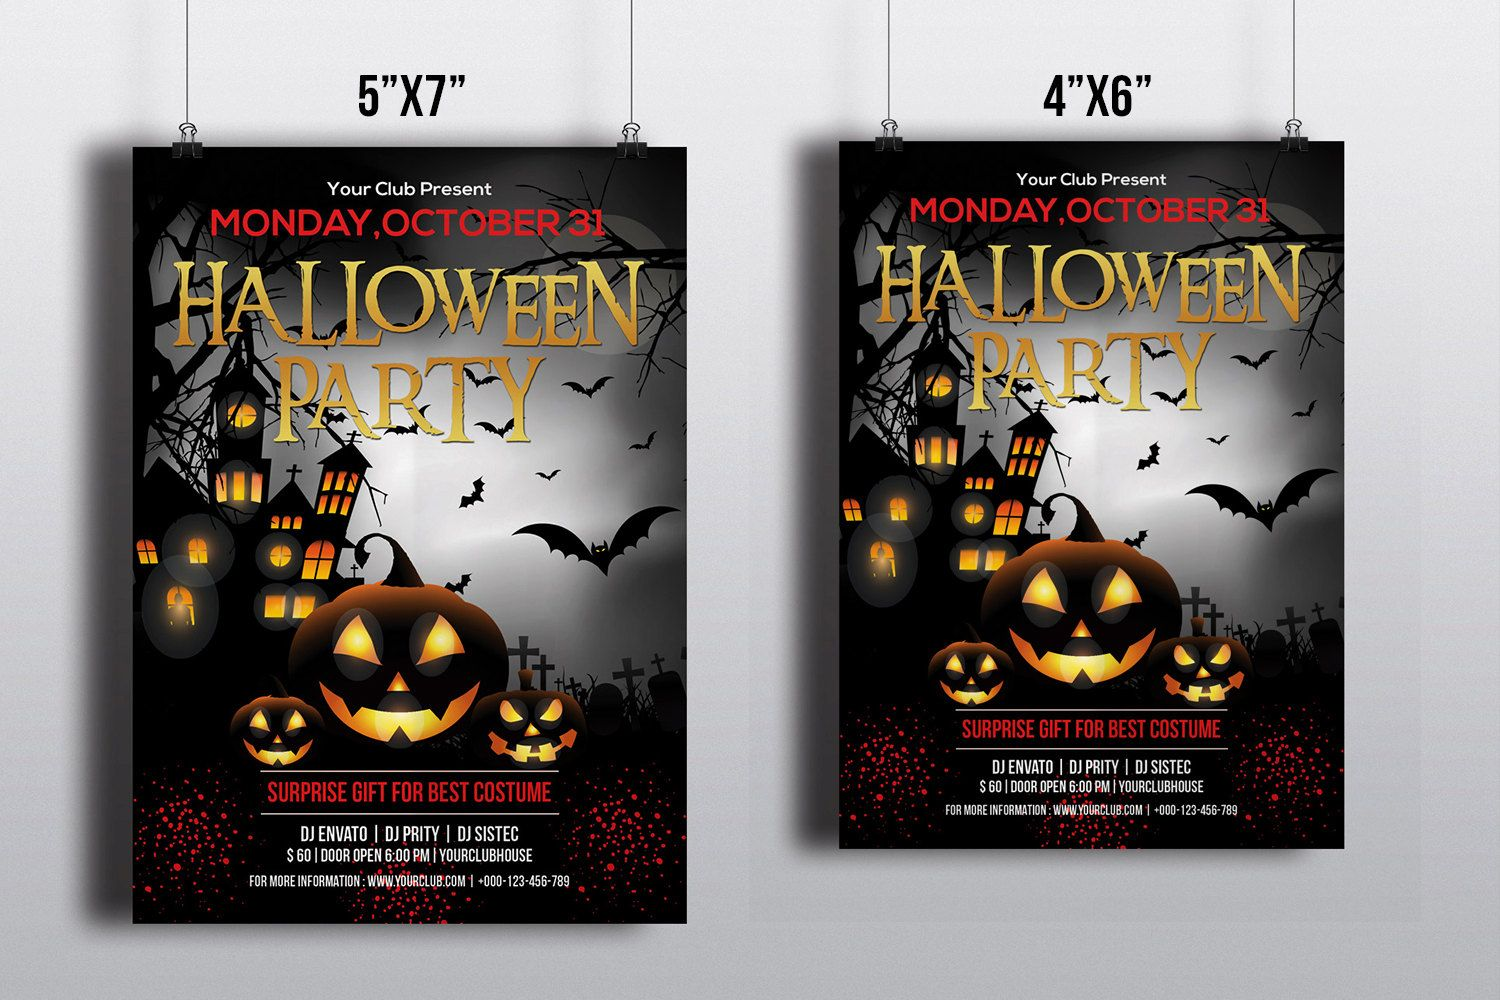 Halloween Party Flyer Template Printable Halloween Party - Party invitation template: halloween costume party flyer